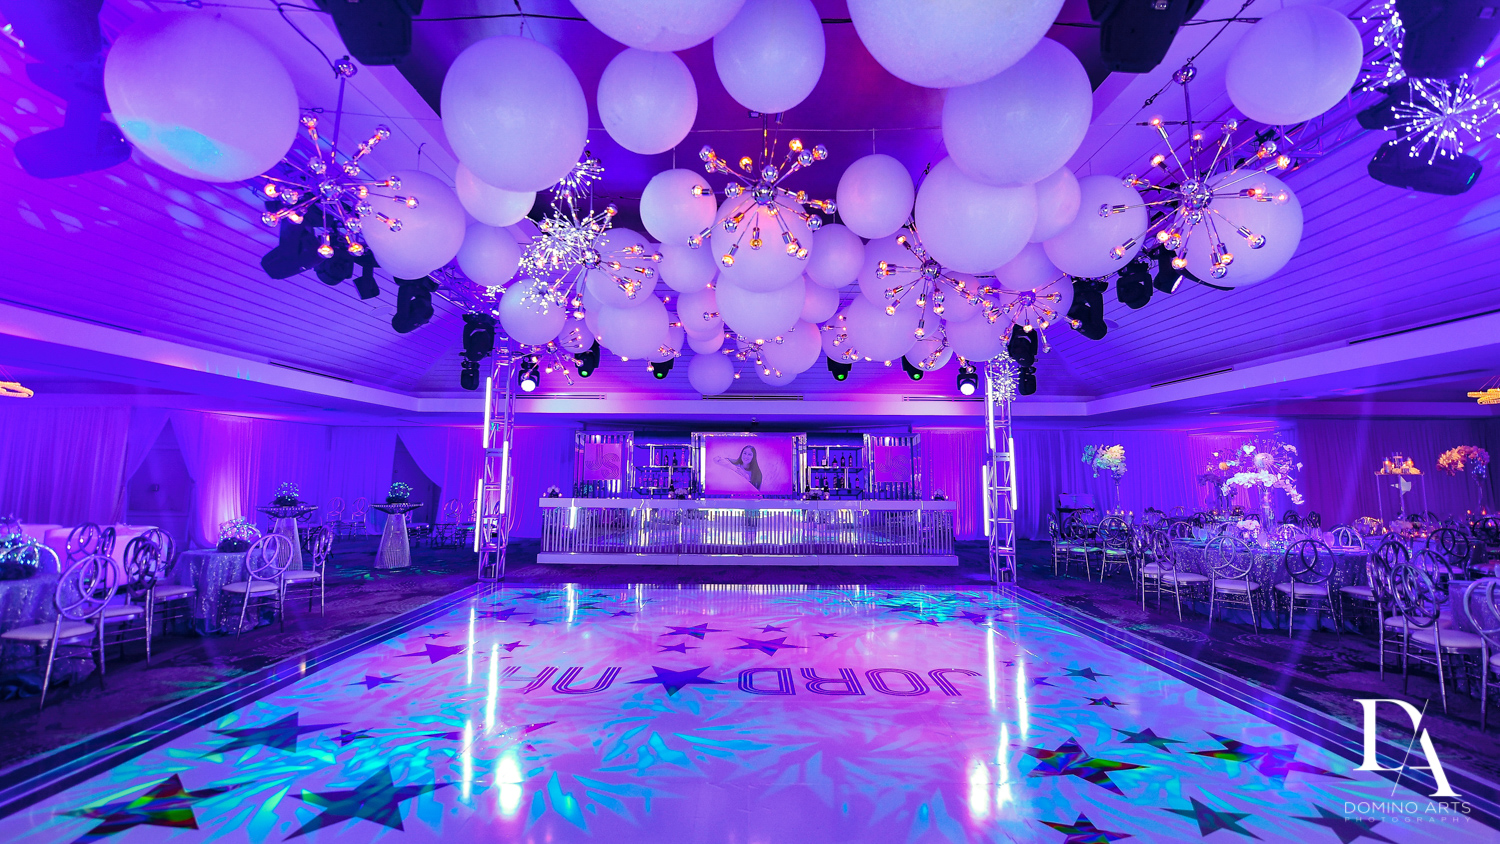 Lots of balloons at Trendy Decor Bat Mitzvah at St Andrews Country Club by Domino Arts Photography